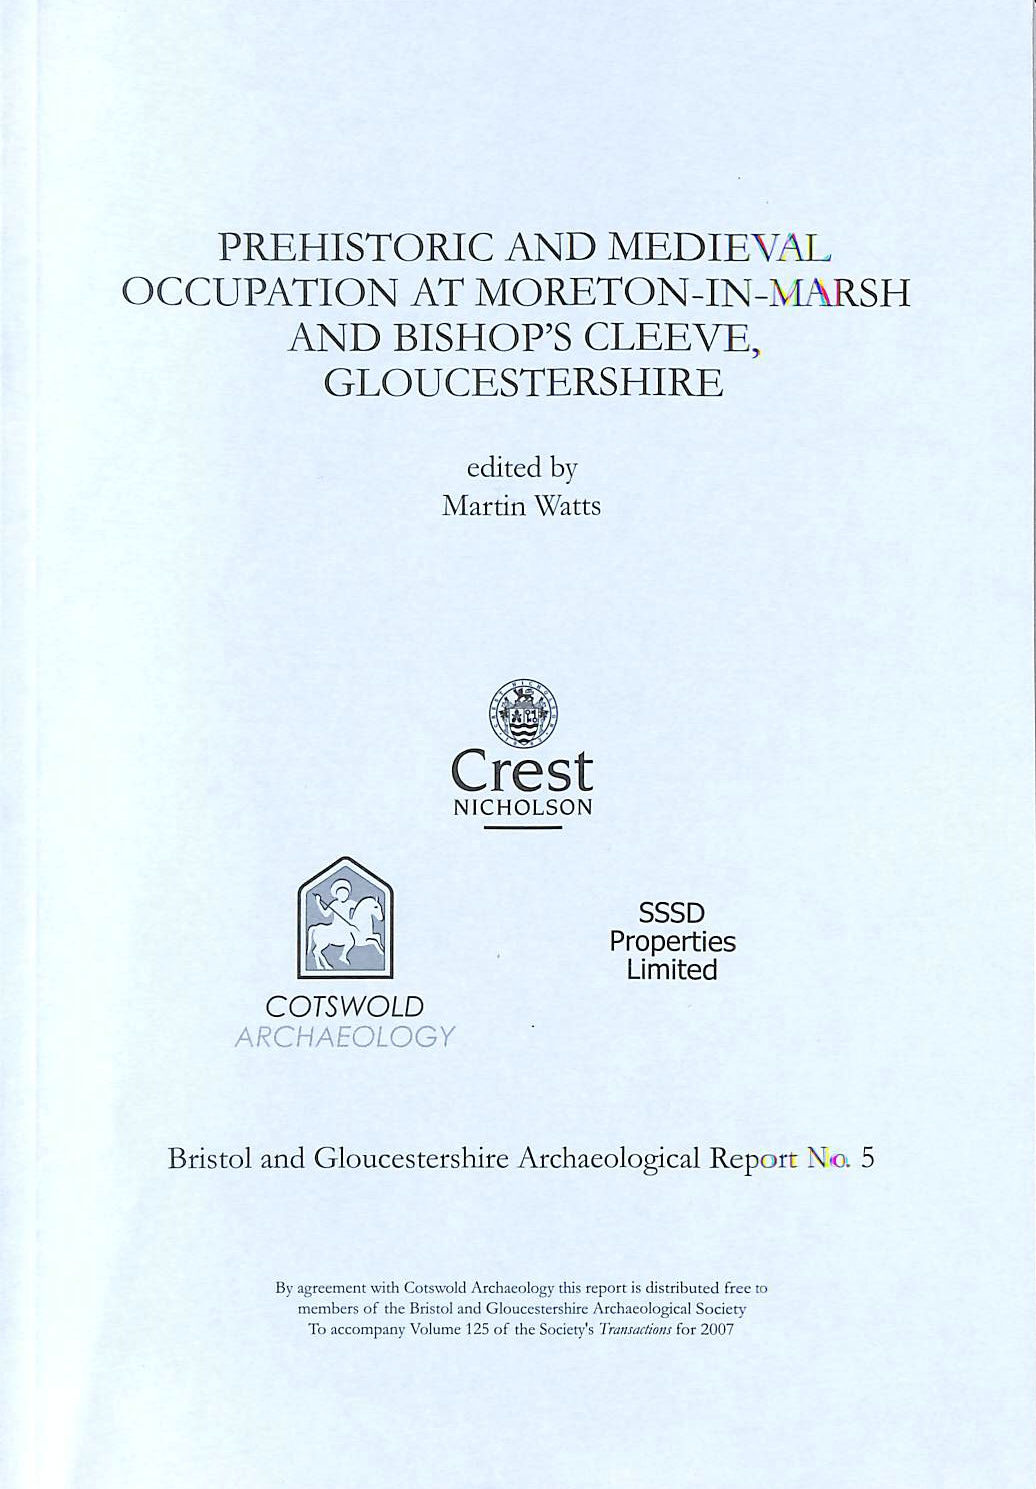 Image for Prehistoric and Medieval Occupation at Moreton-in-Marsh and Bishop's Cleeve, Gloucestershire (Bristol and Gloucestershire Archaeological Report)